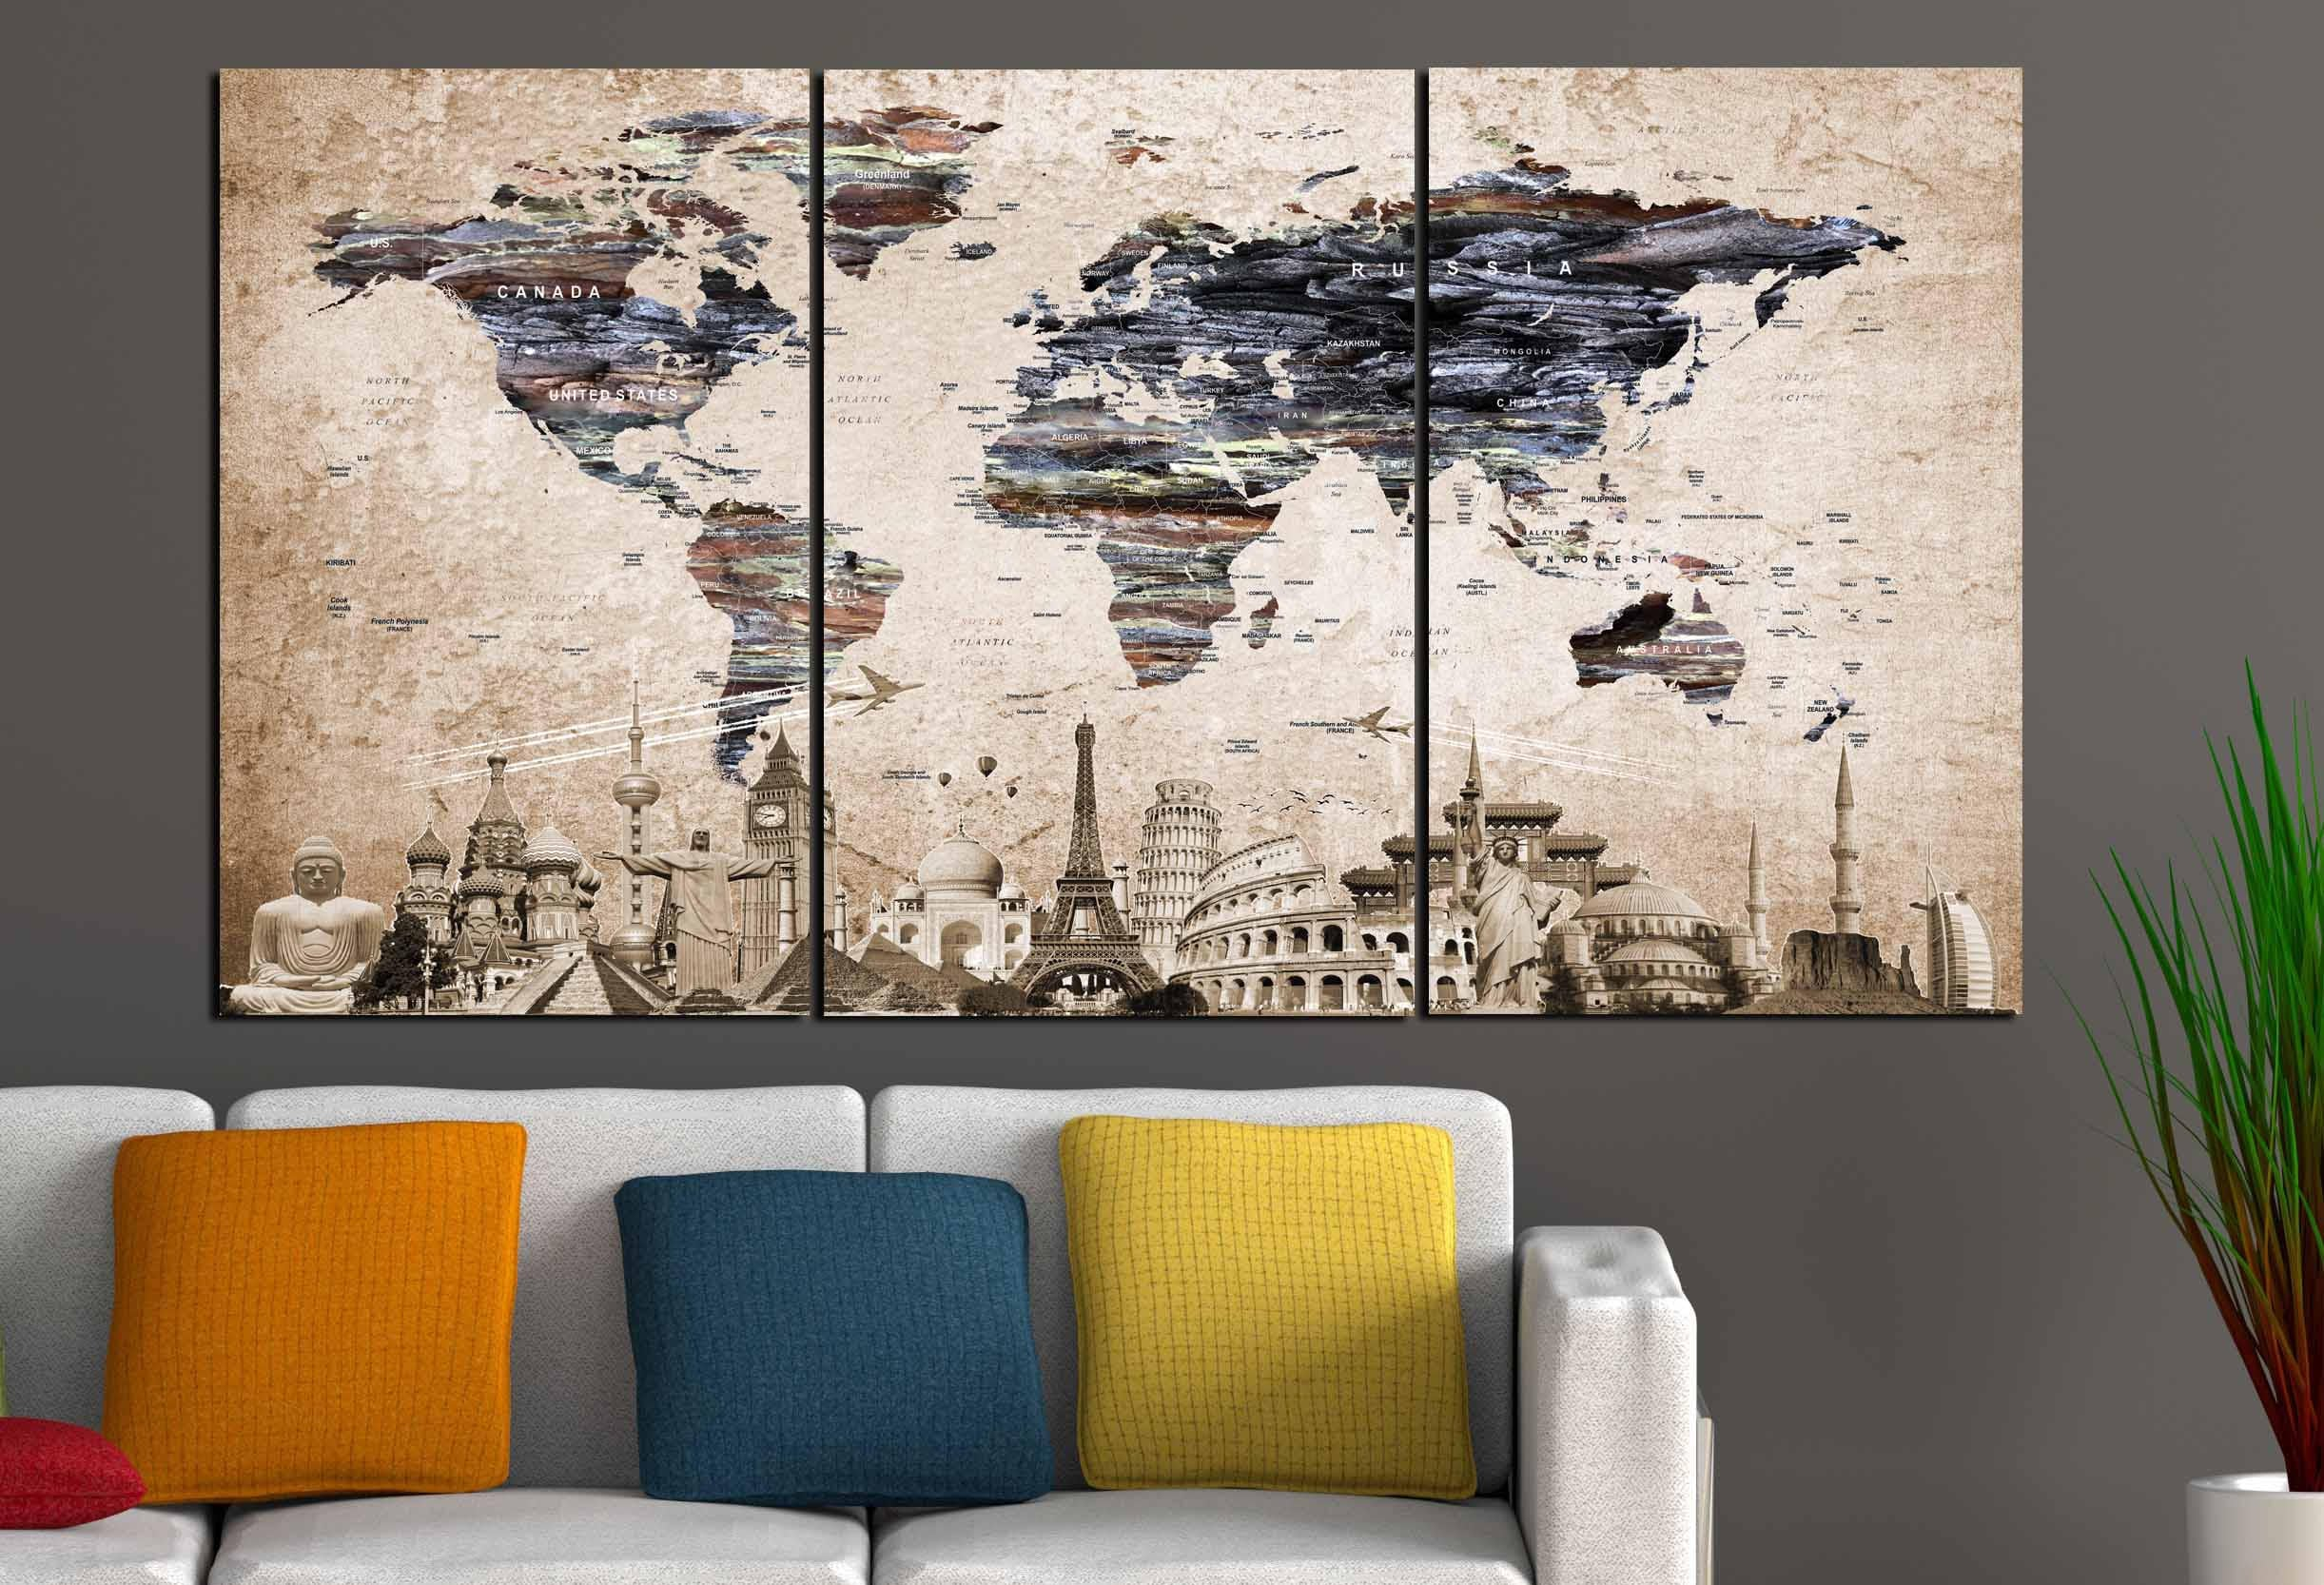 World map wall artlarge world mapvintage world mapworld map world map wall artlarge world mapvintage world mapworld map canvaspush pin map canvastravel map canvasworld map artold world map art gumiabroncs Image collections